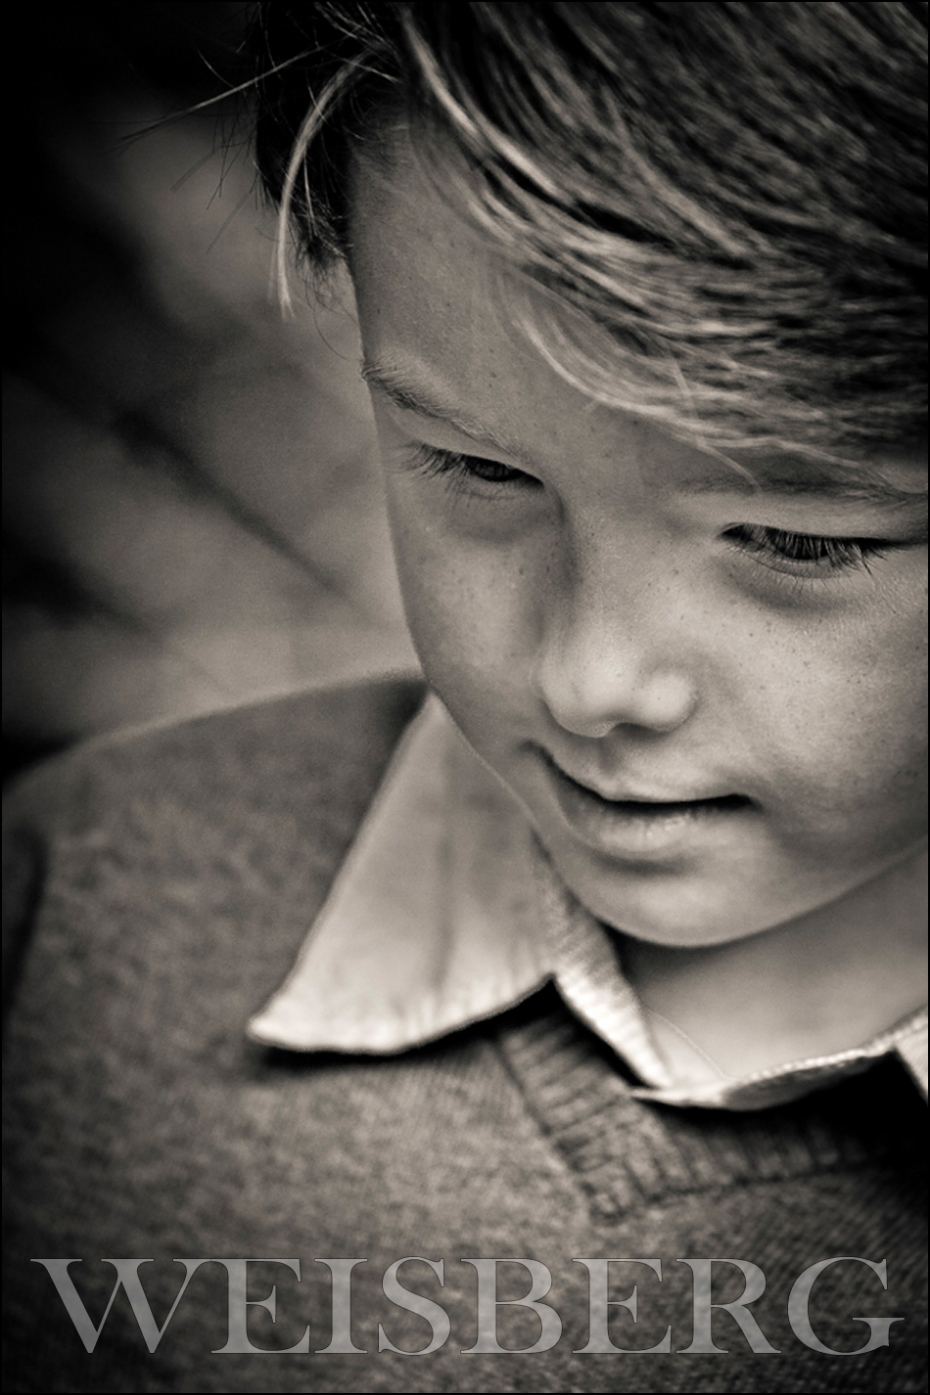 black & white portrait of a 6 year old boy